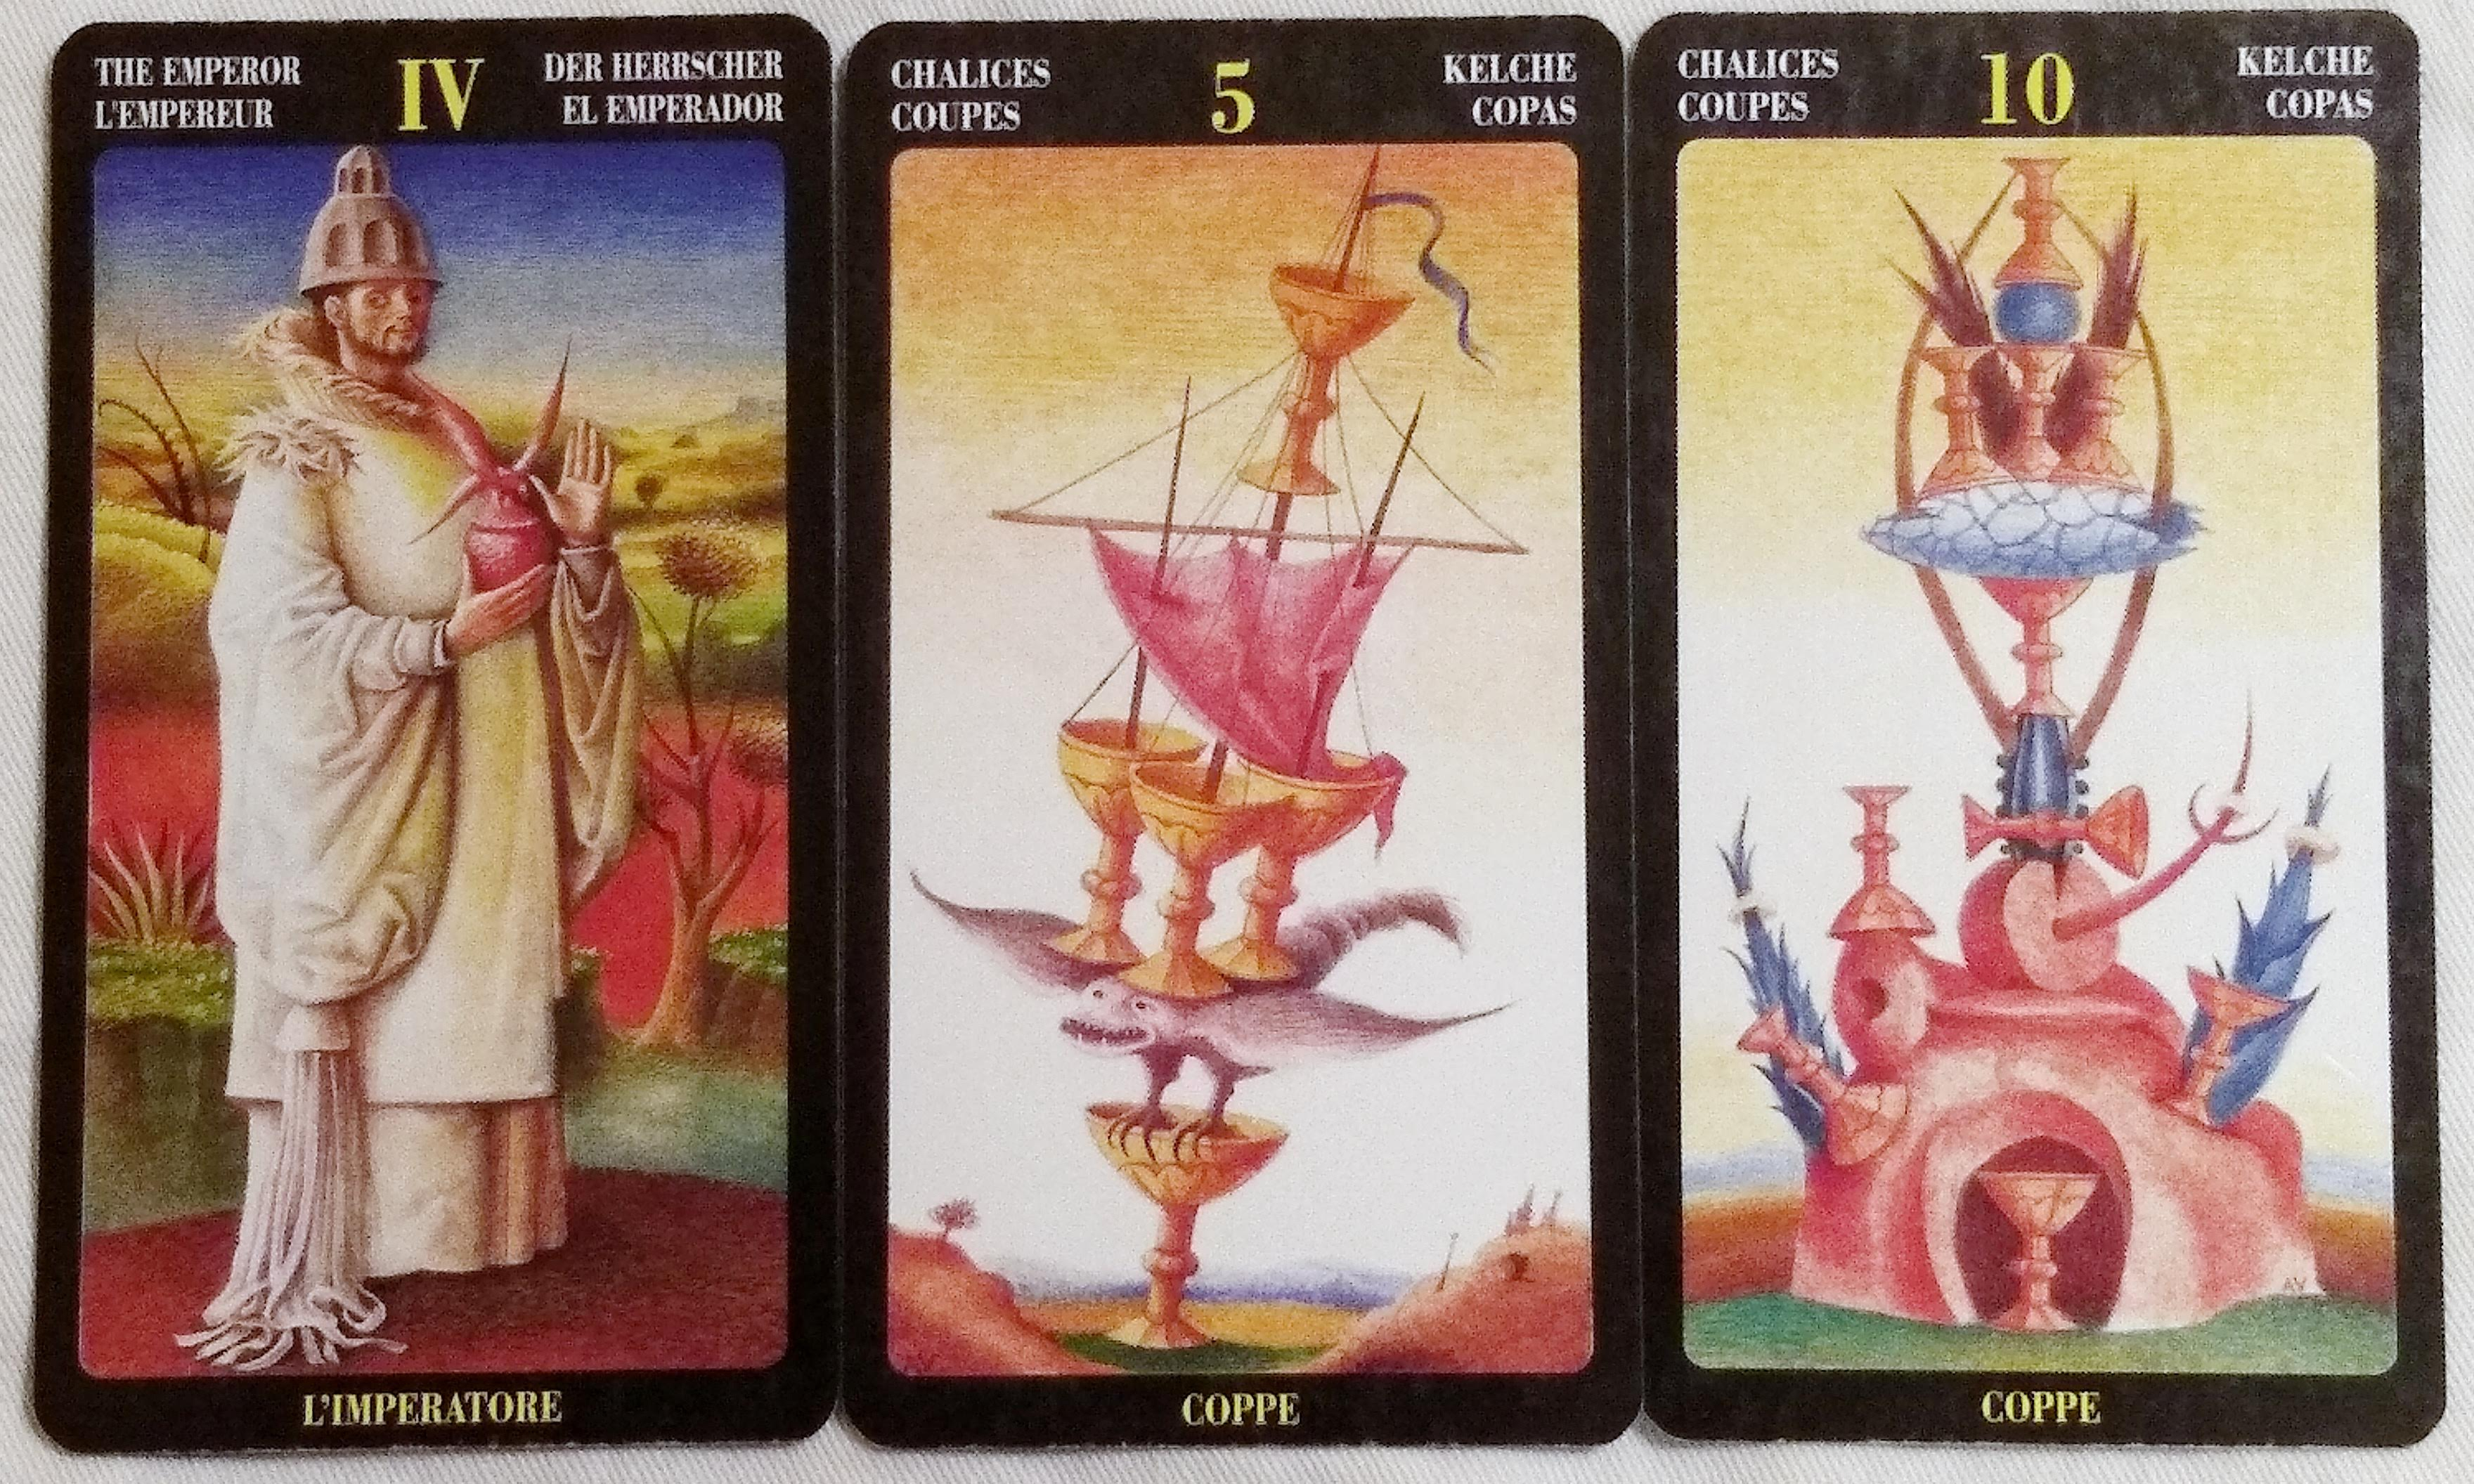 Bosch Tarot: The Emperor [IV], 5 of Chalices, & 10 of Chalices.